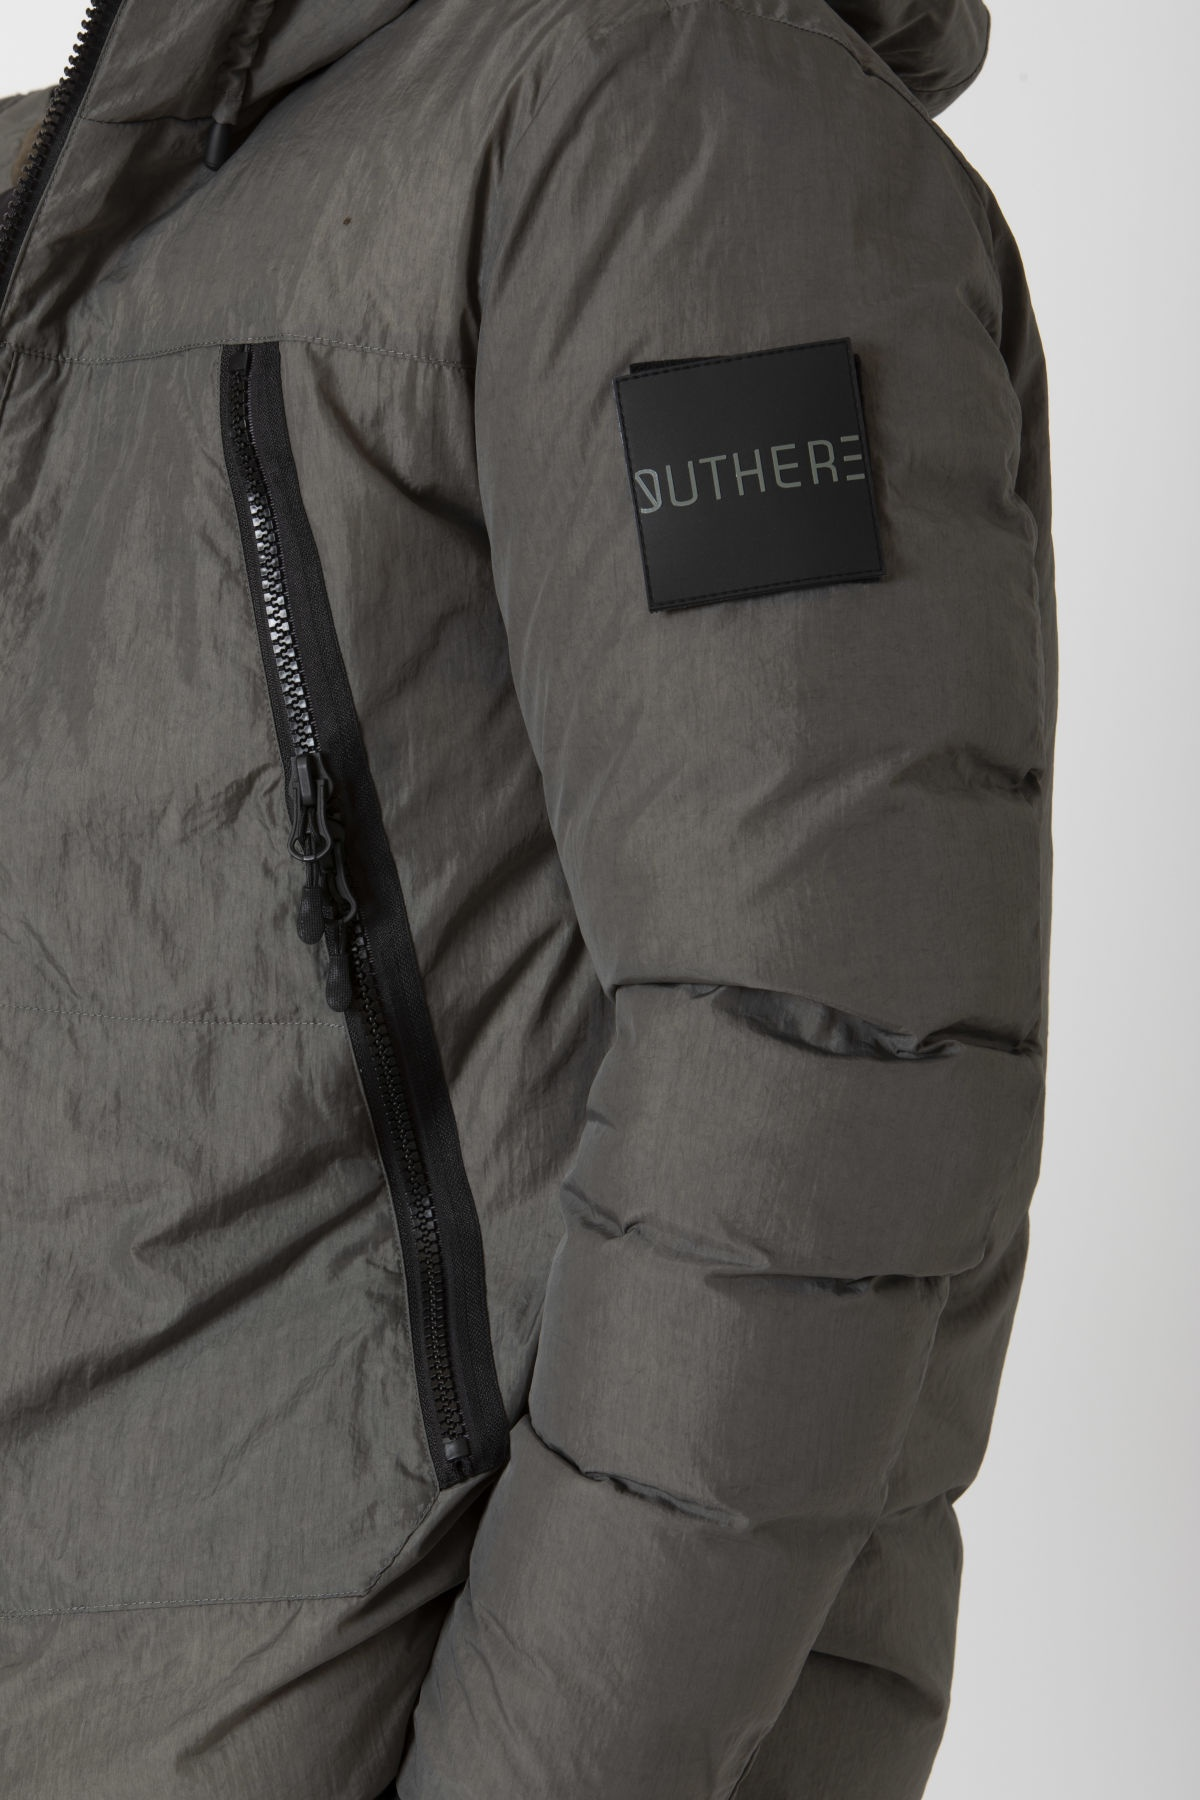 DUNE STORM Jacket for man OUTHERE F/W 19-20